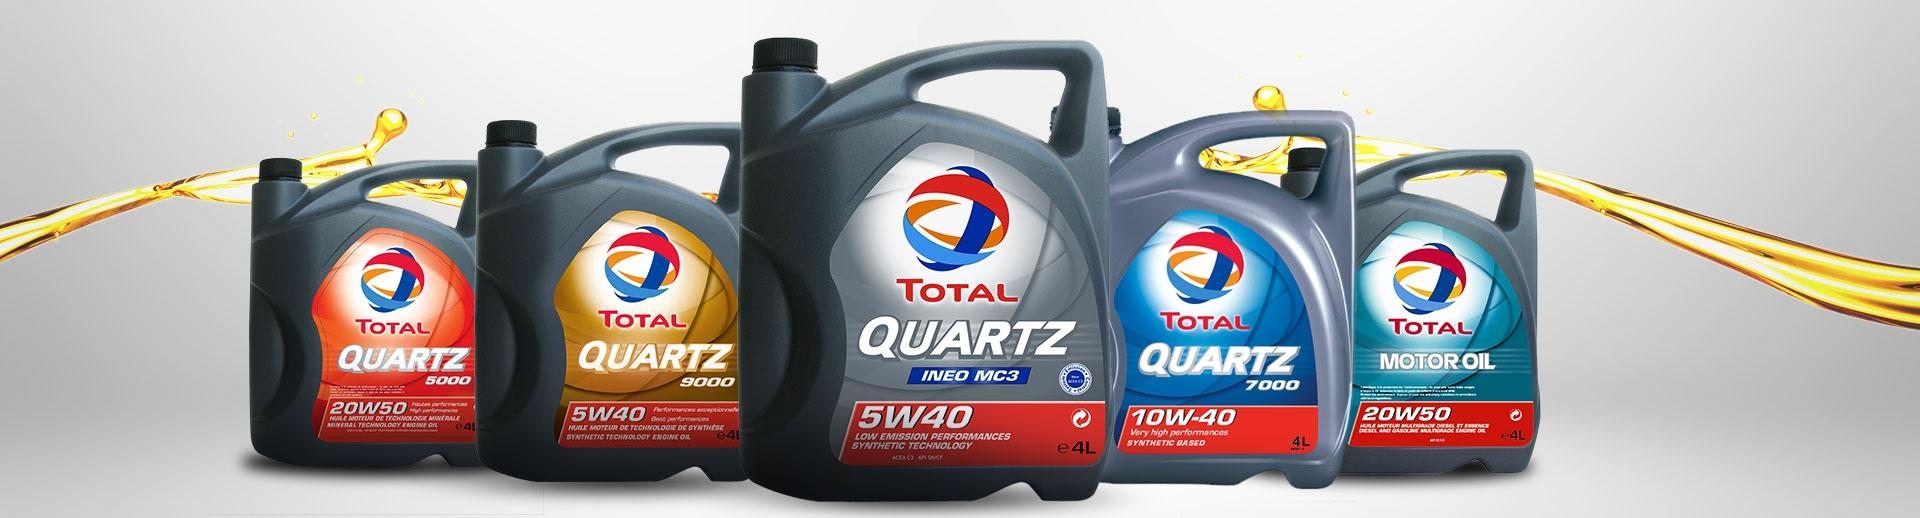 Total Lubricants | Egypt